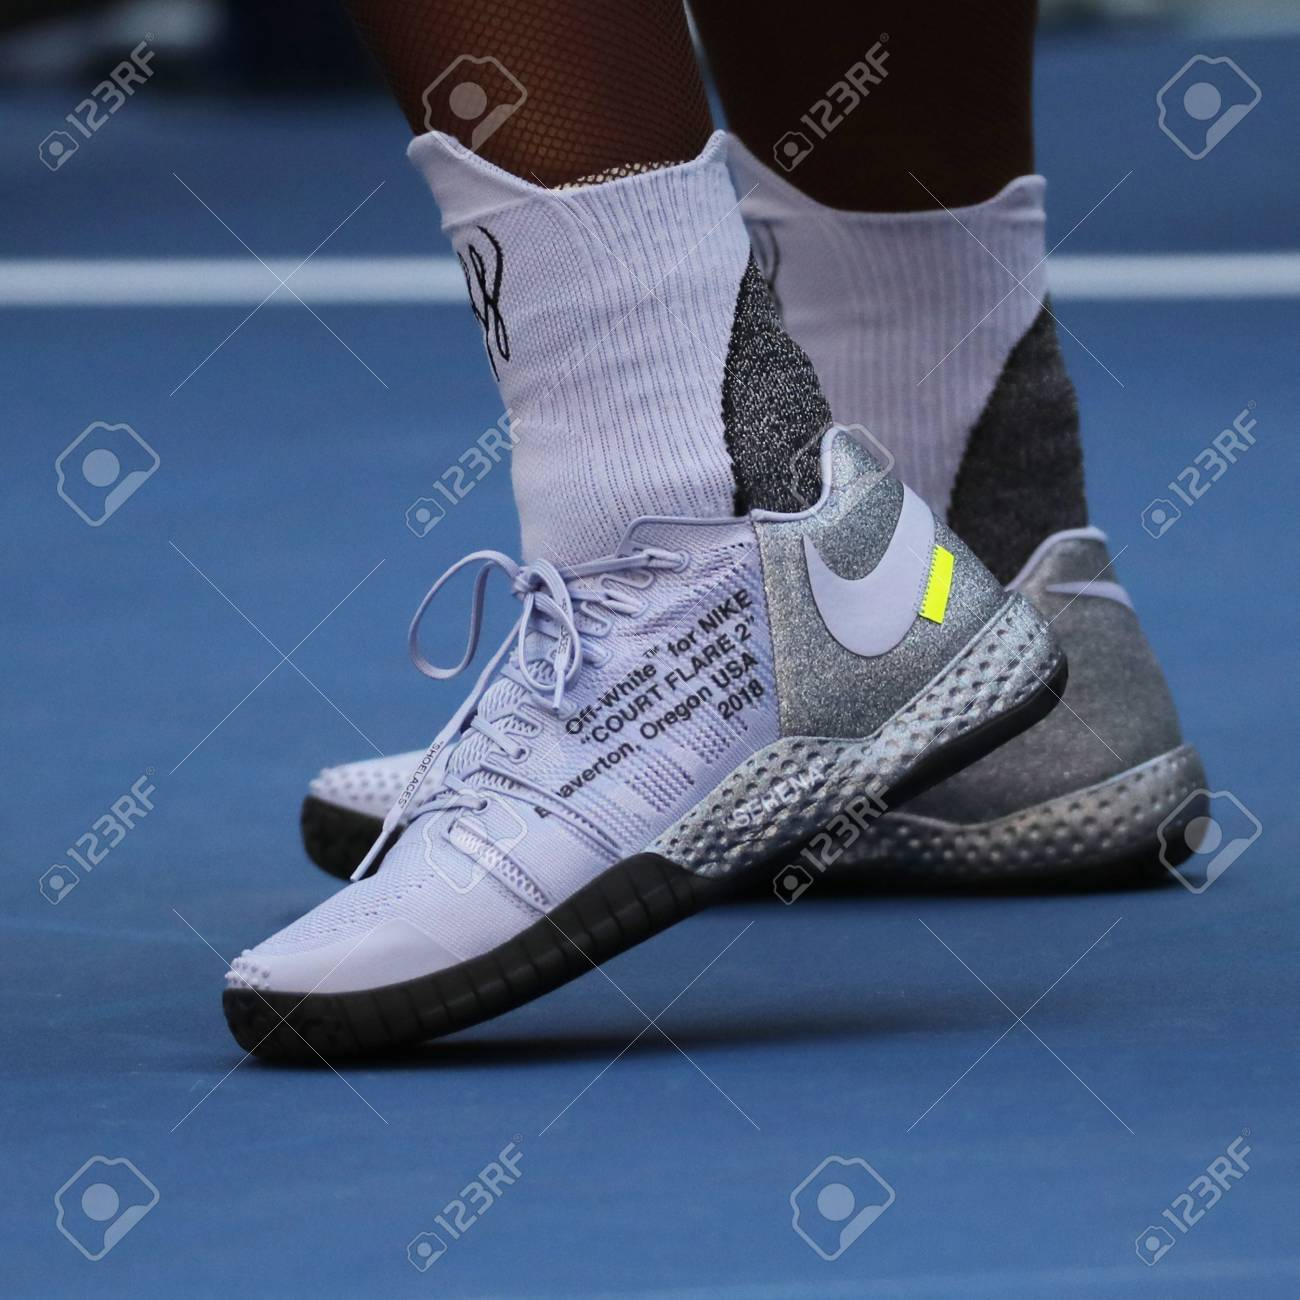 Proponer madre centavo  NEW YORK - SEPTEMBER 2, 2018: 23-time Grand Slam Champion Serena.. Stock  Photo, Picture And Royalty Free Image. Image 108216019.